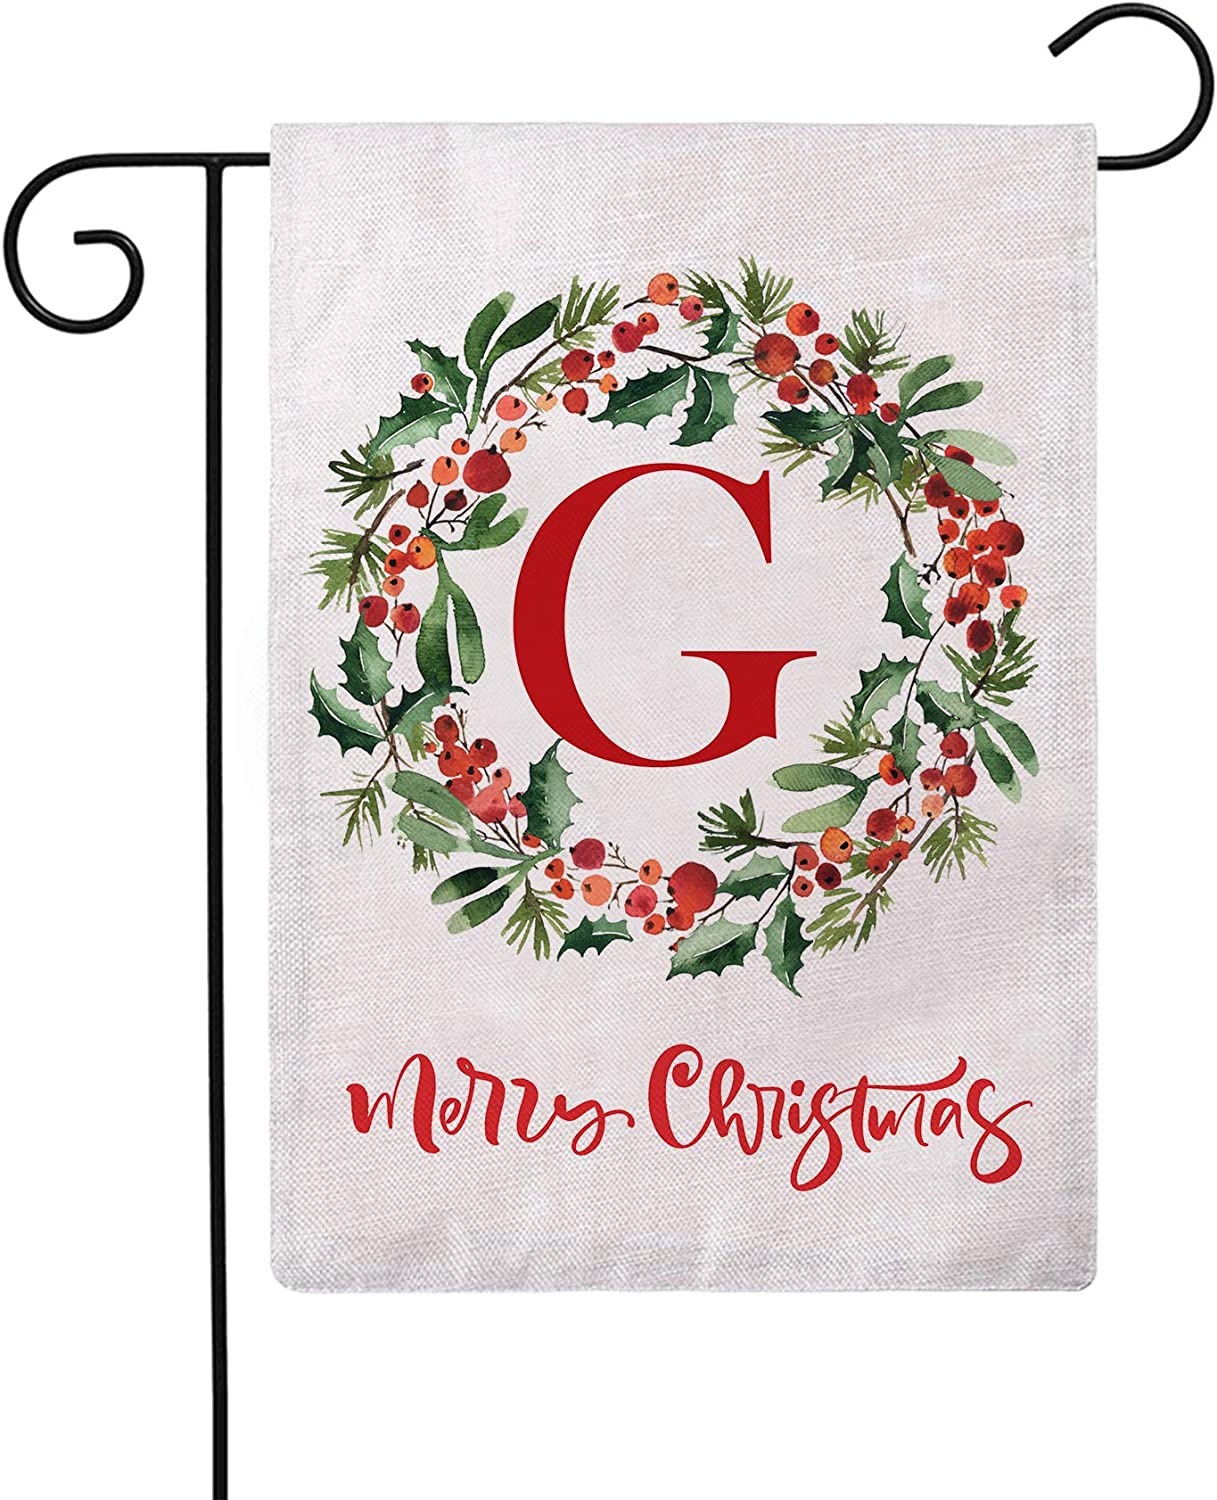 ULOVE LOVE YOURSELF Merry Christmas Wreath Decorative Garden Flags with Monogram Letter G Double Sided Winter Holiday Outdoor Garden Flags 12.5×18 Inch for House Garden Yard Patio Decor (G)